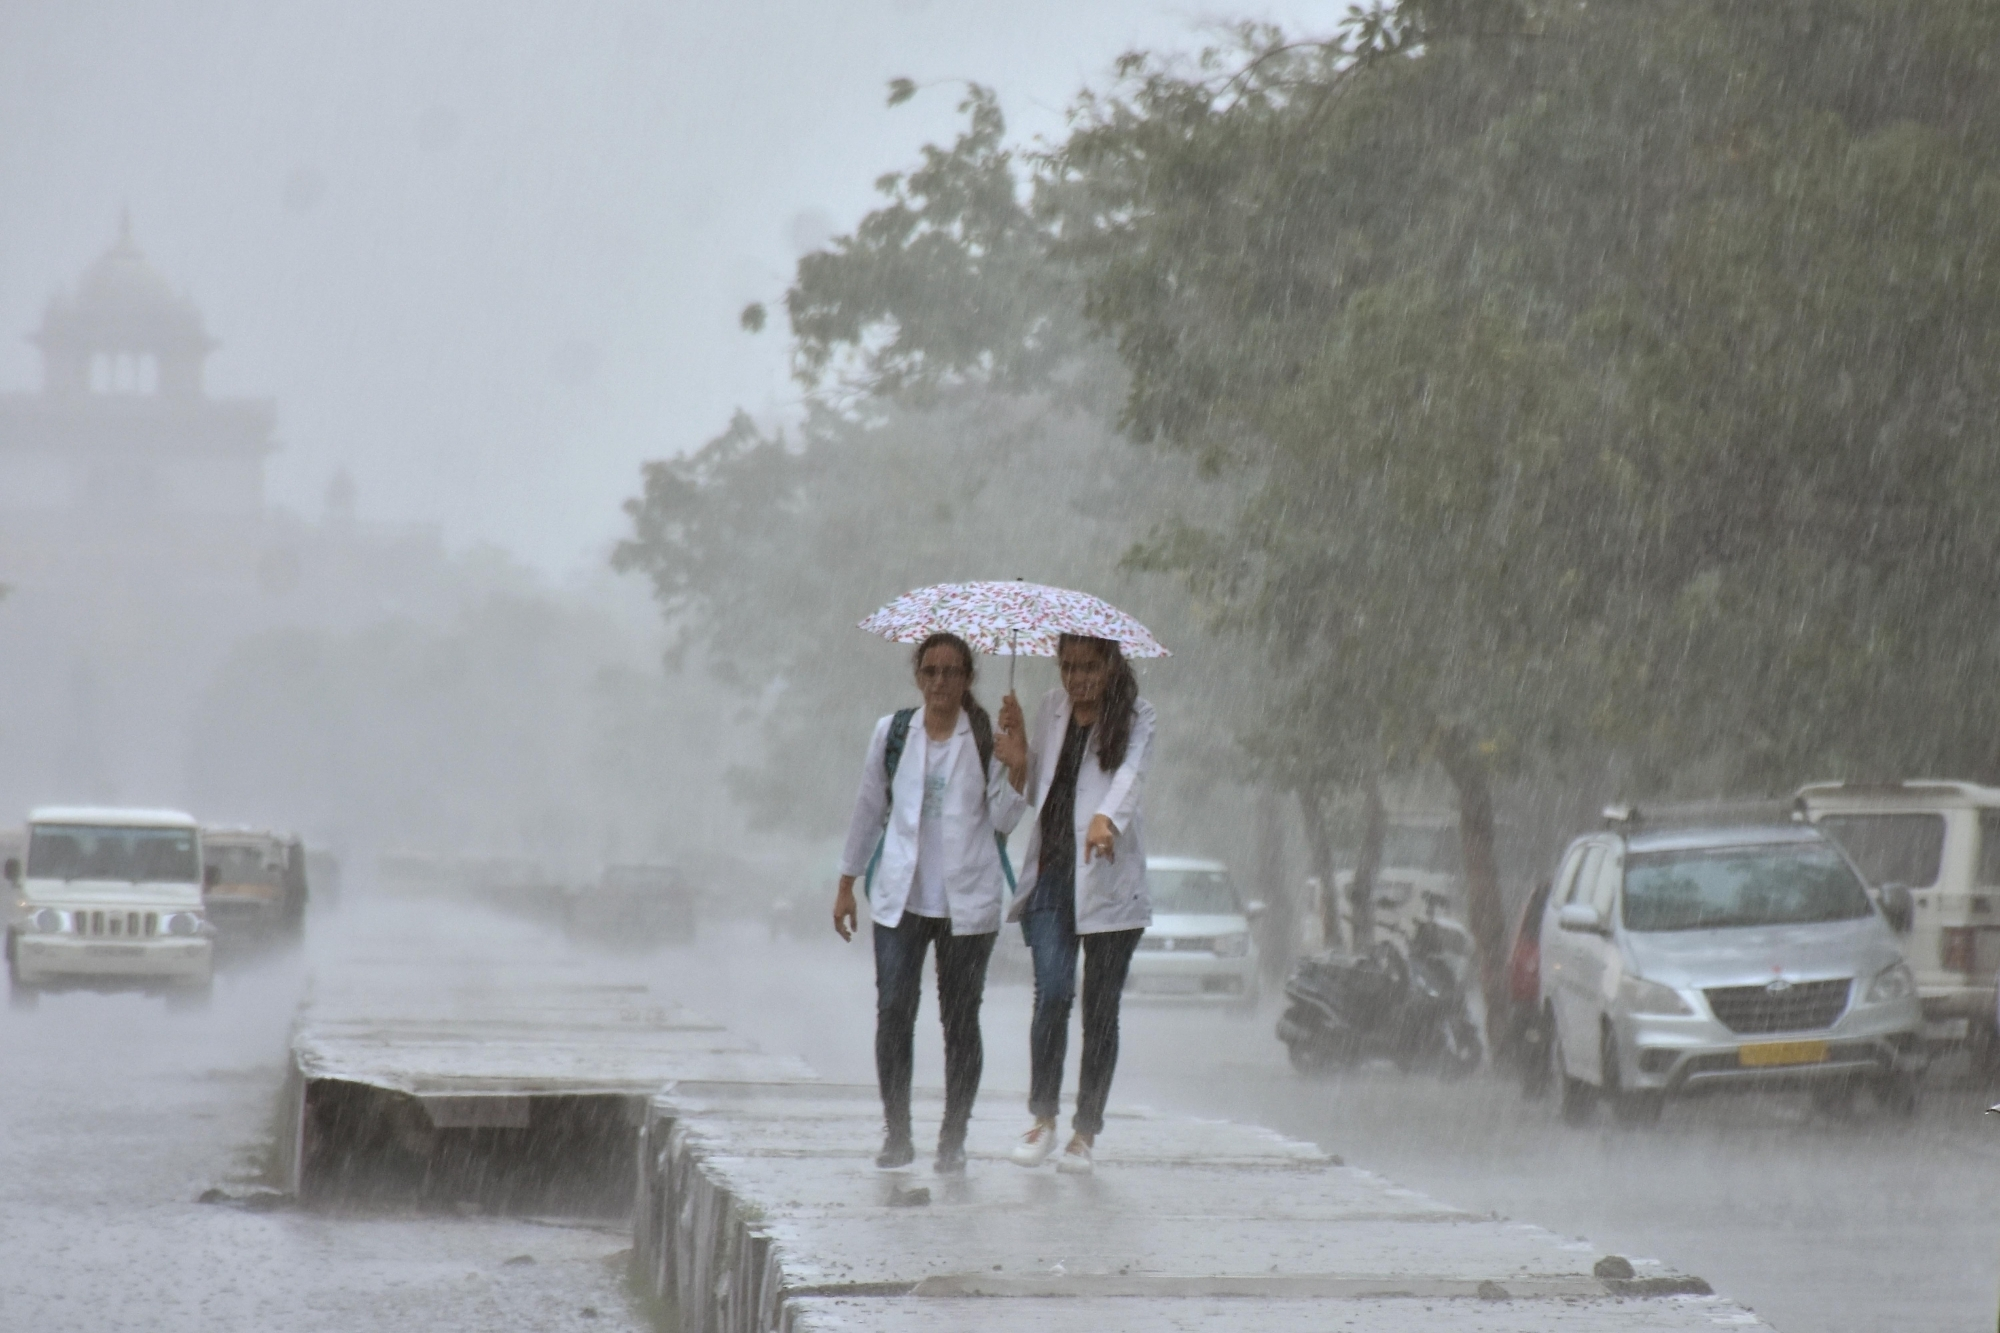 Women try to shield themselves under an umbrella as rain and strong winds lash Jaipur. (Credit: IANS)